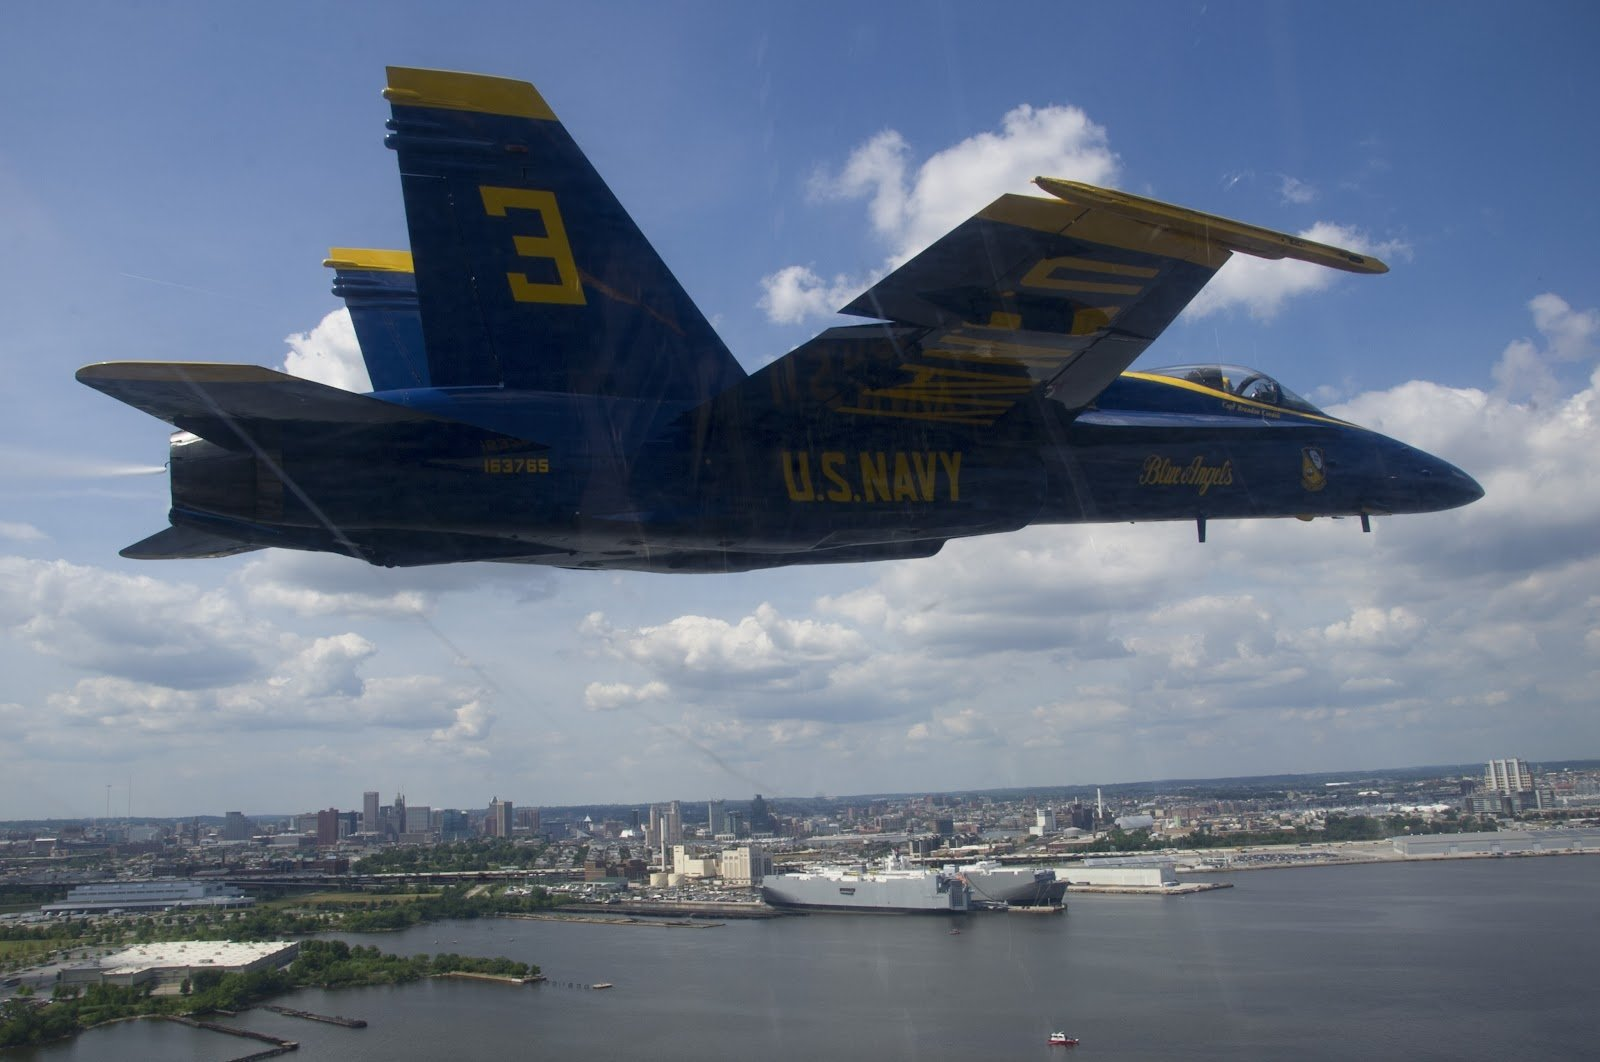 Military - McDonnell Douglas F/A-18 Hornet  Military Blue Angels Vehicle Aircraft Airplane Wallpaper